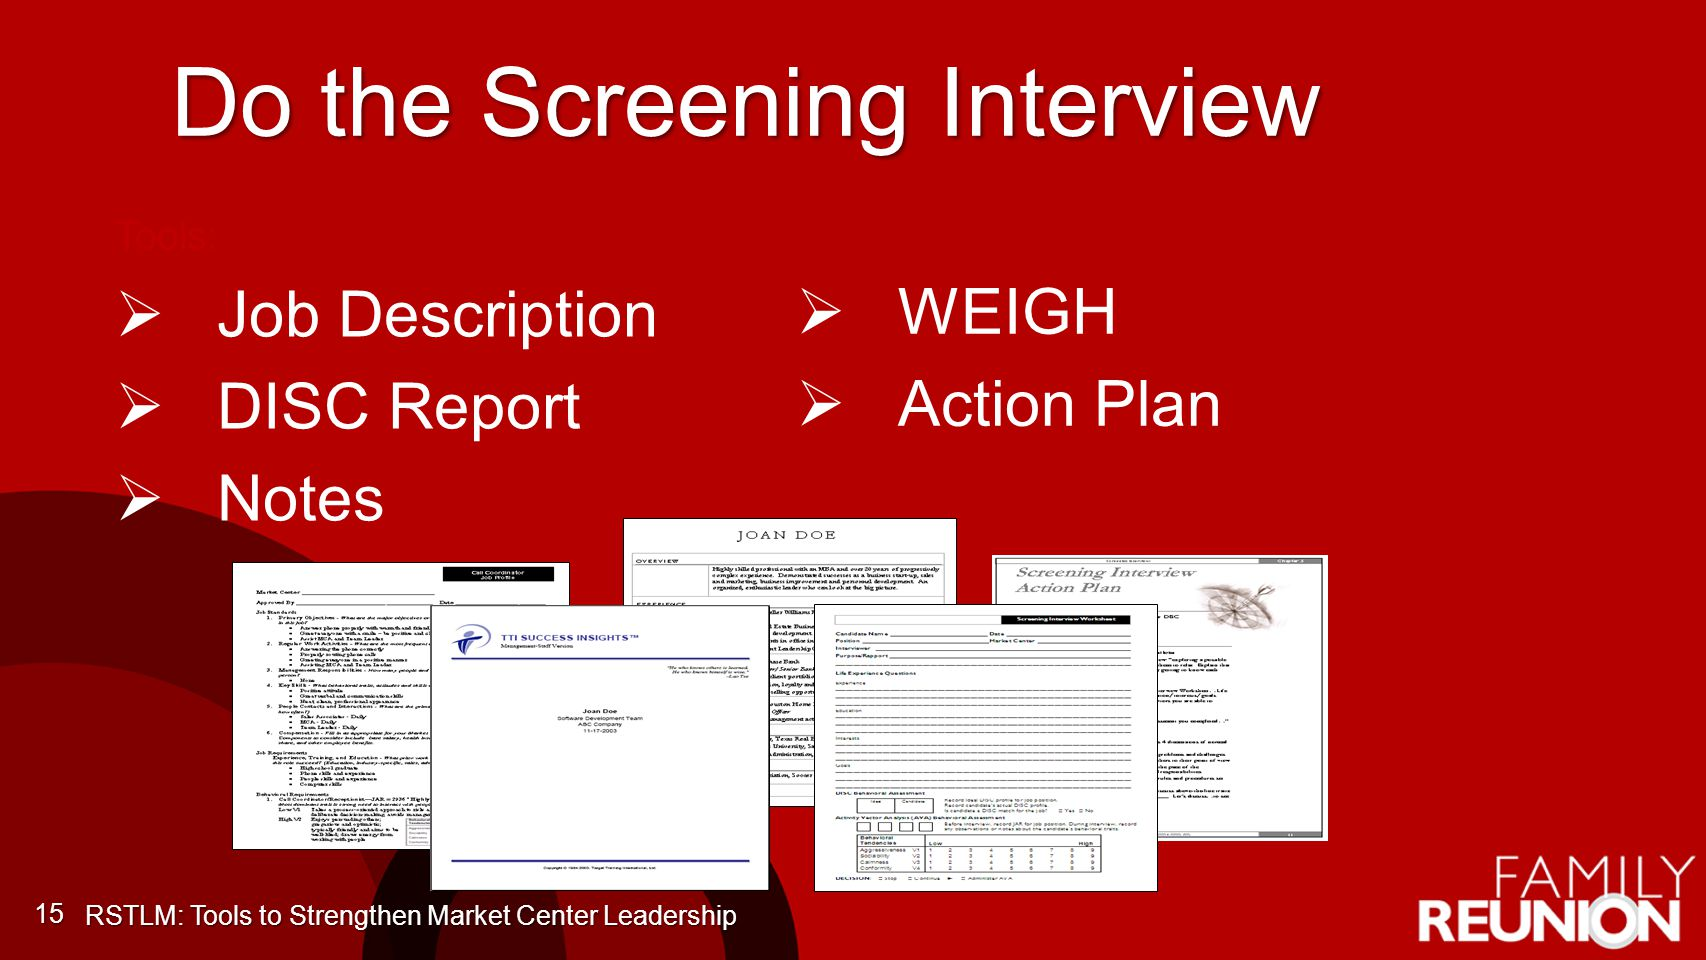 Do the Screening Interview